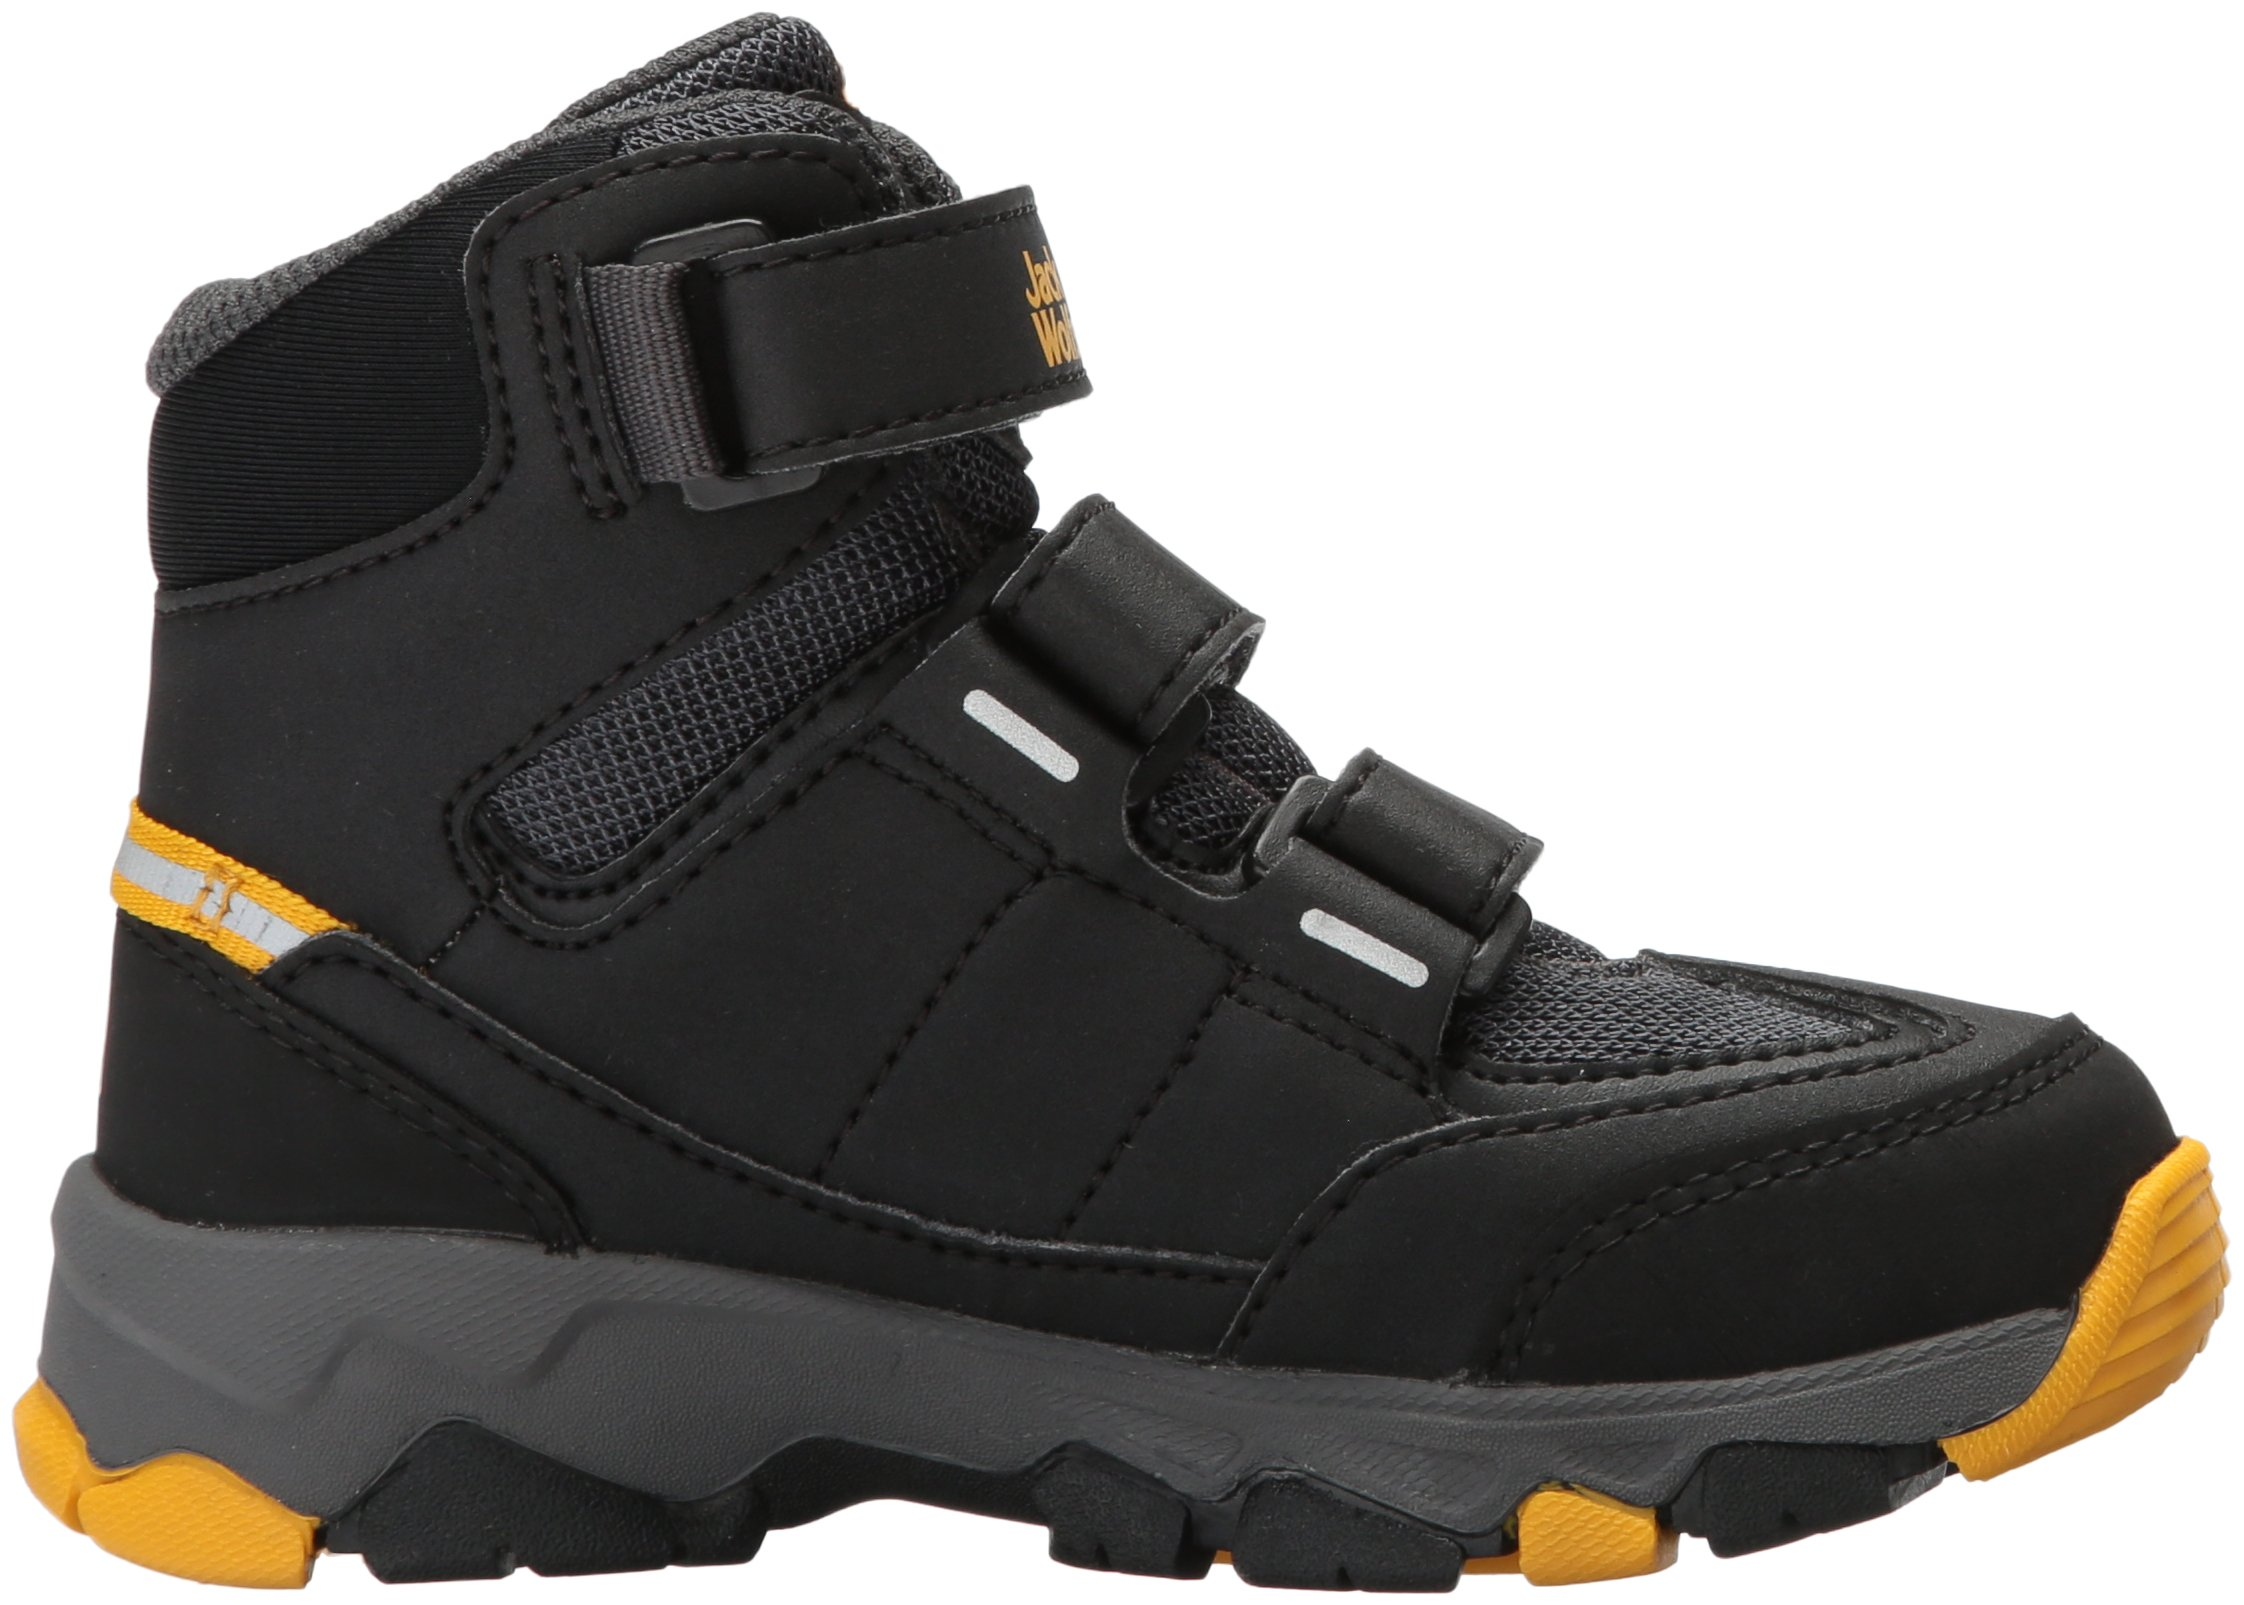 Jack Wolfskin Boy's Unisex Kids' MTN Attack 2 Texapore Mid Vc K High Rise Hiking Shoes Child 7